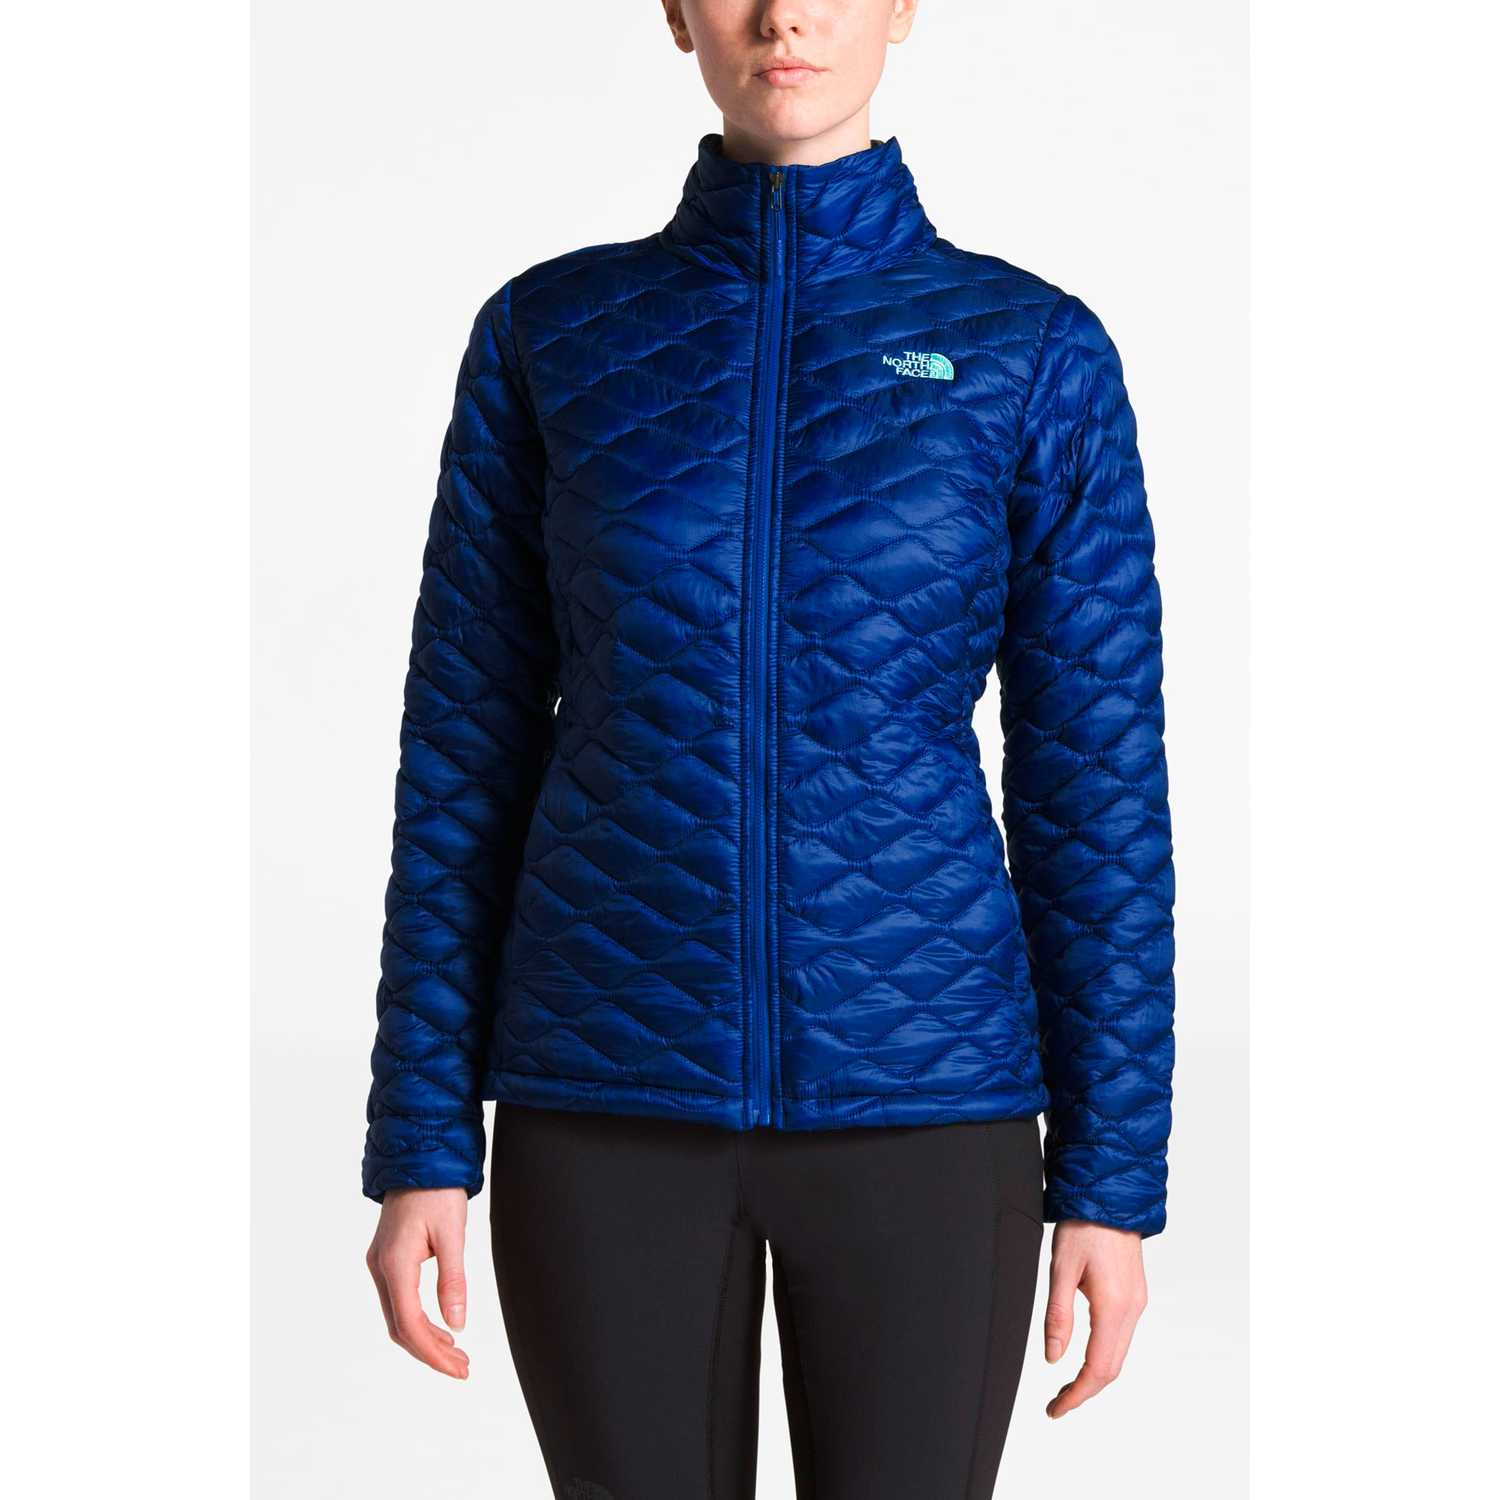 Casaca de Mujer The North Face Azul w thermoball jacket